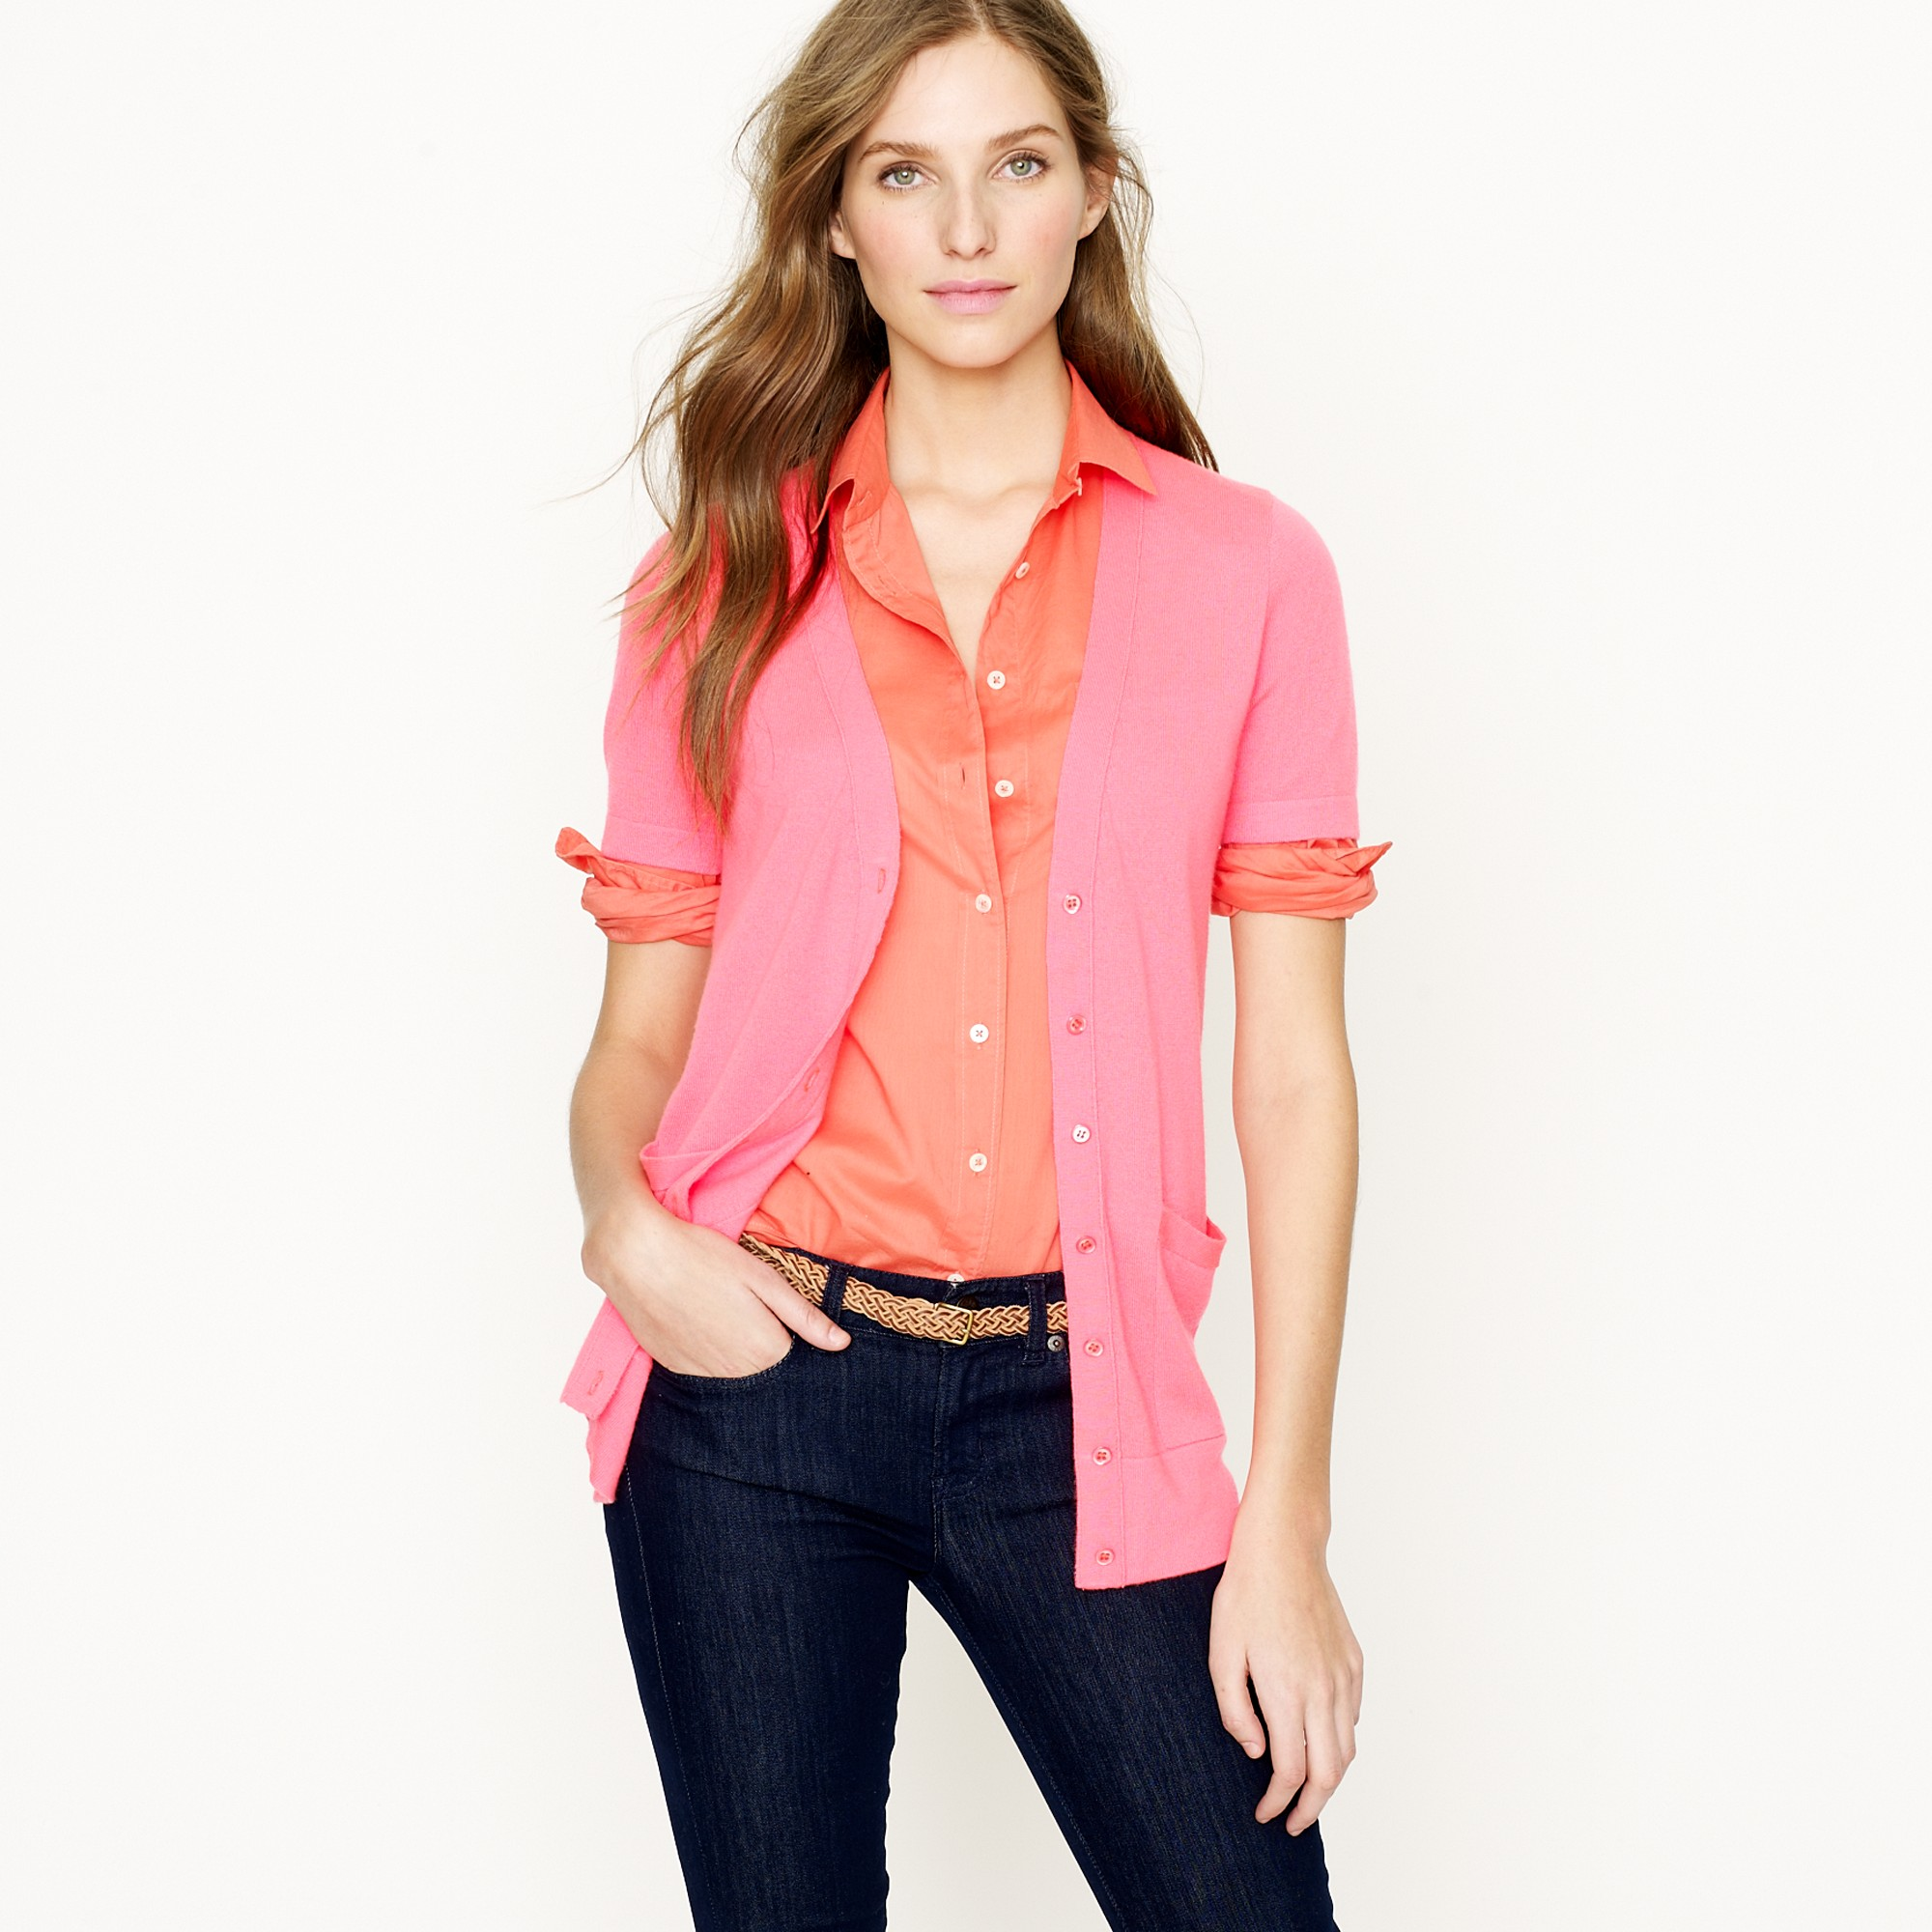 J.crew Featherweight Cashmere Short-sleeve Cardigan in Pink | Lyst